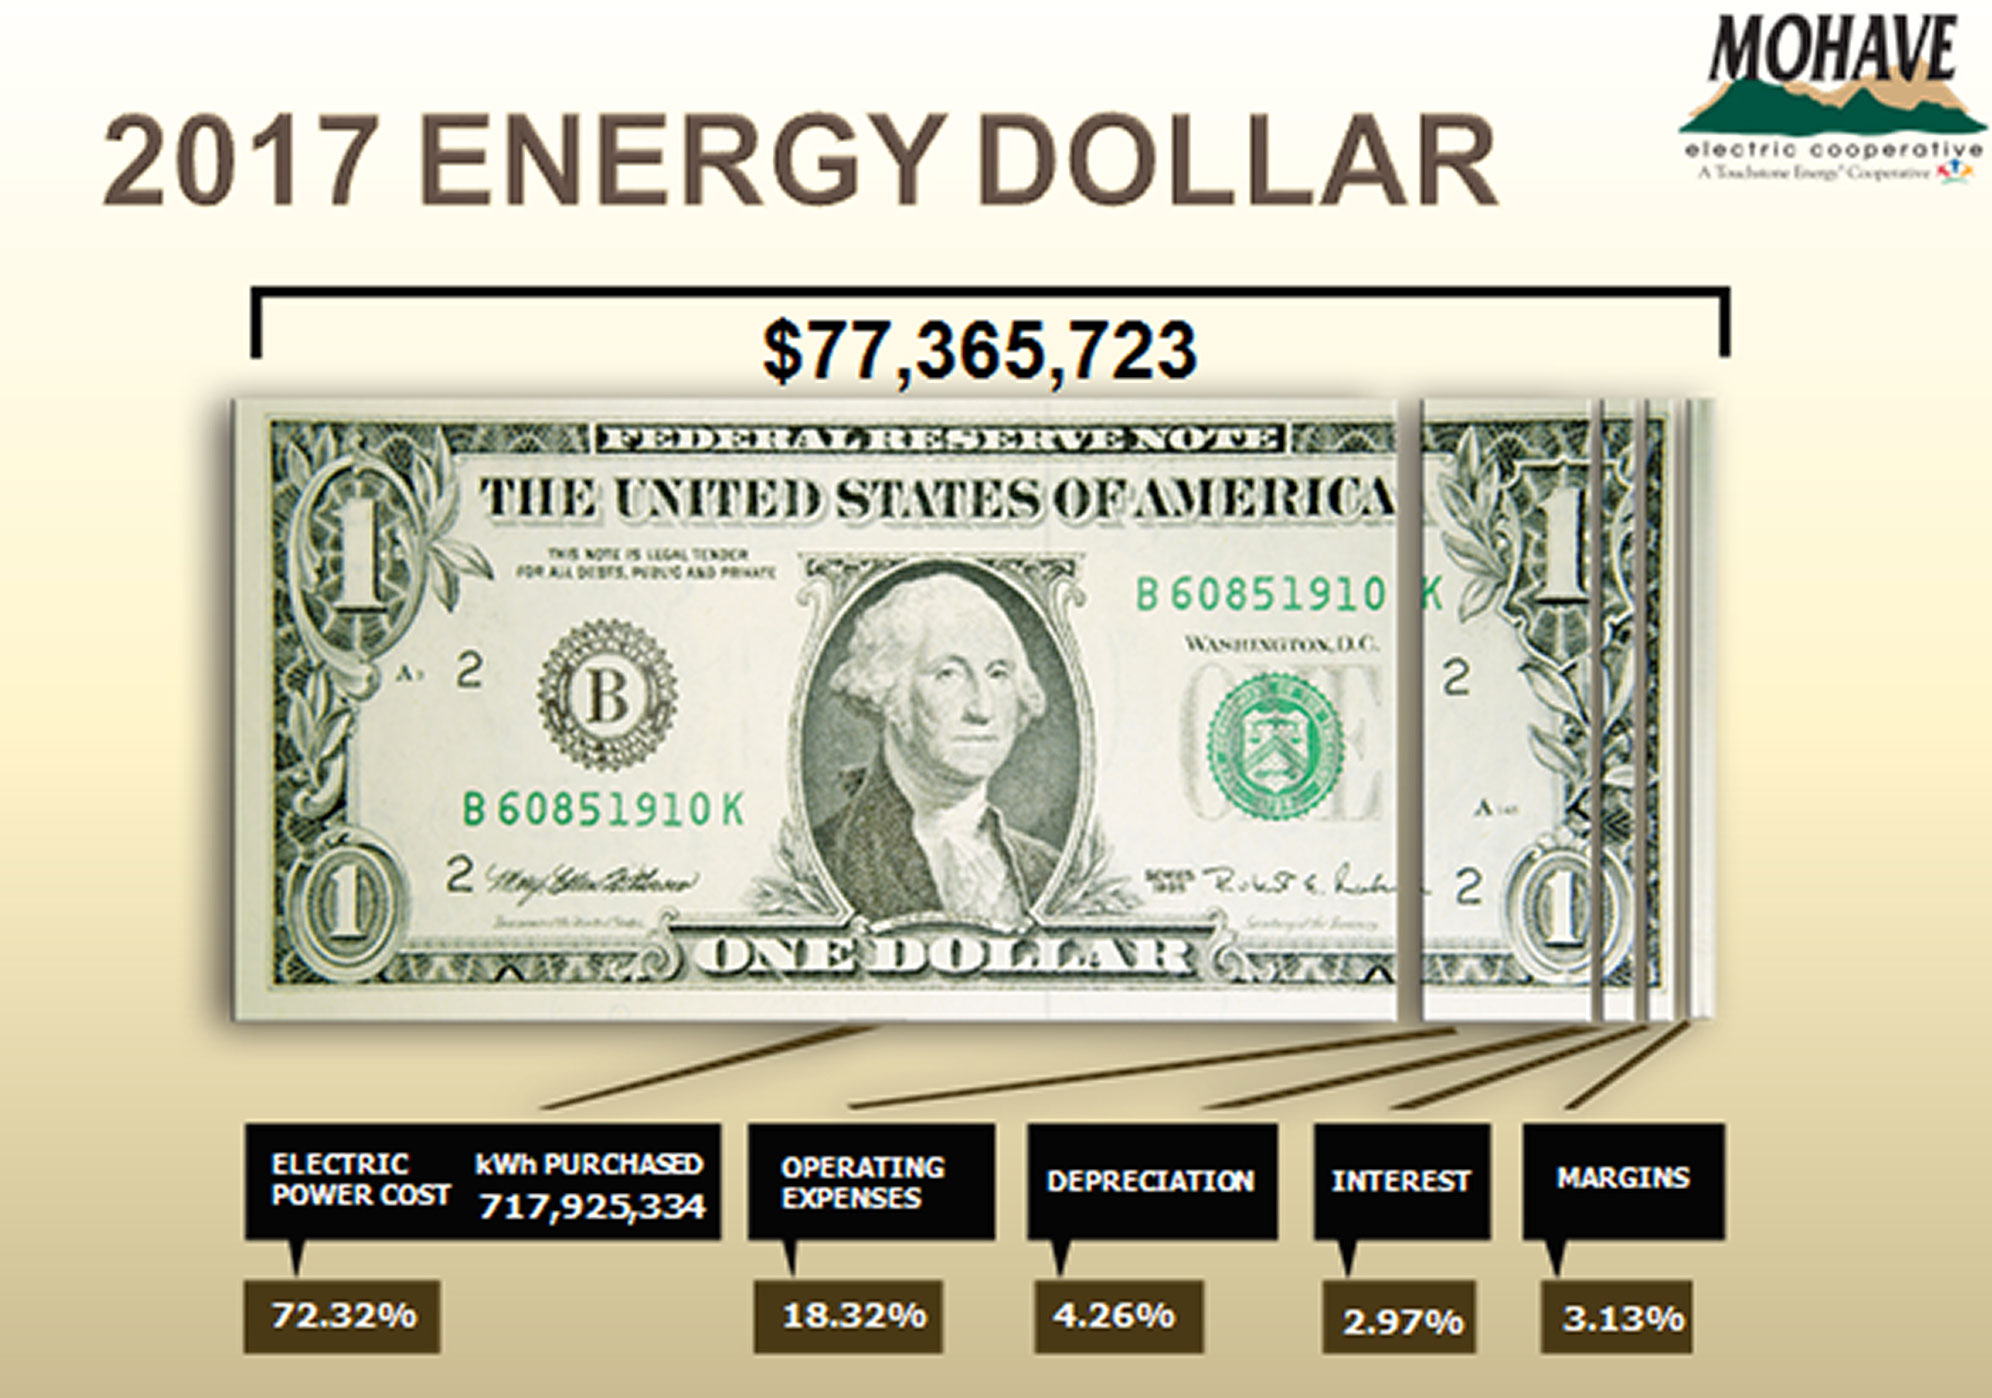 2017 Energy Dollar. Total= $77,365,723. Electric power cost= 72.32%. kWh purchased=717,925,334. Operating expenses=18.32%. Depreciation=4.26%. Interest=2.97%. Margins=3.13%.